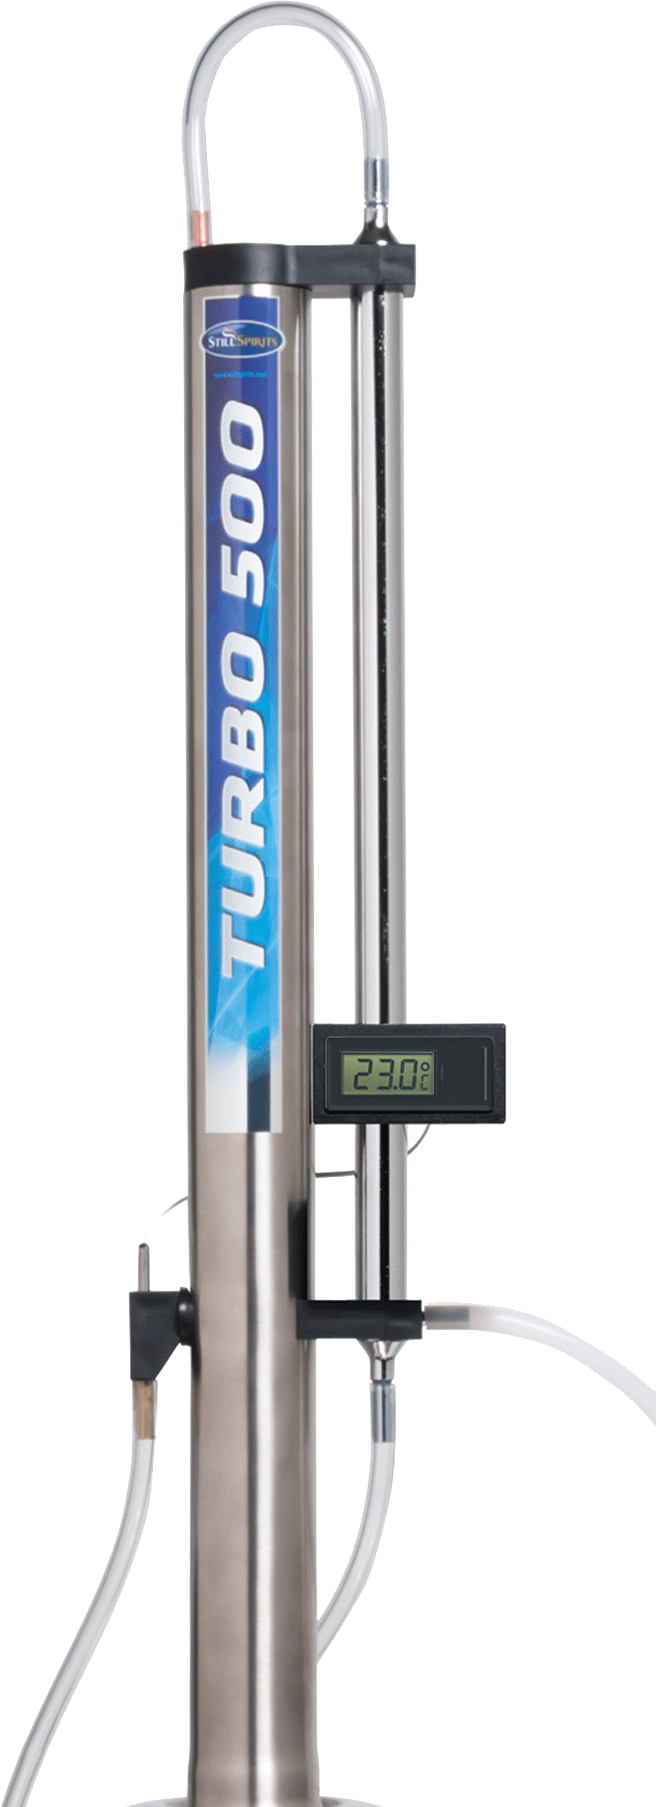 Turbo 500 Stainless Steel Condensor